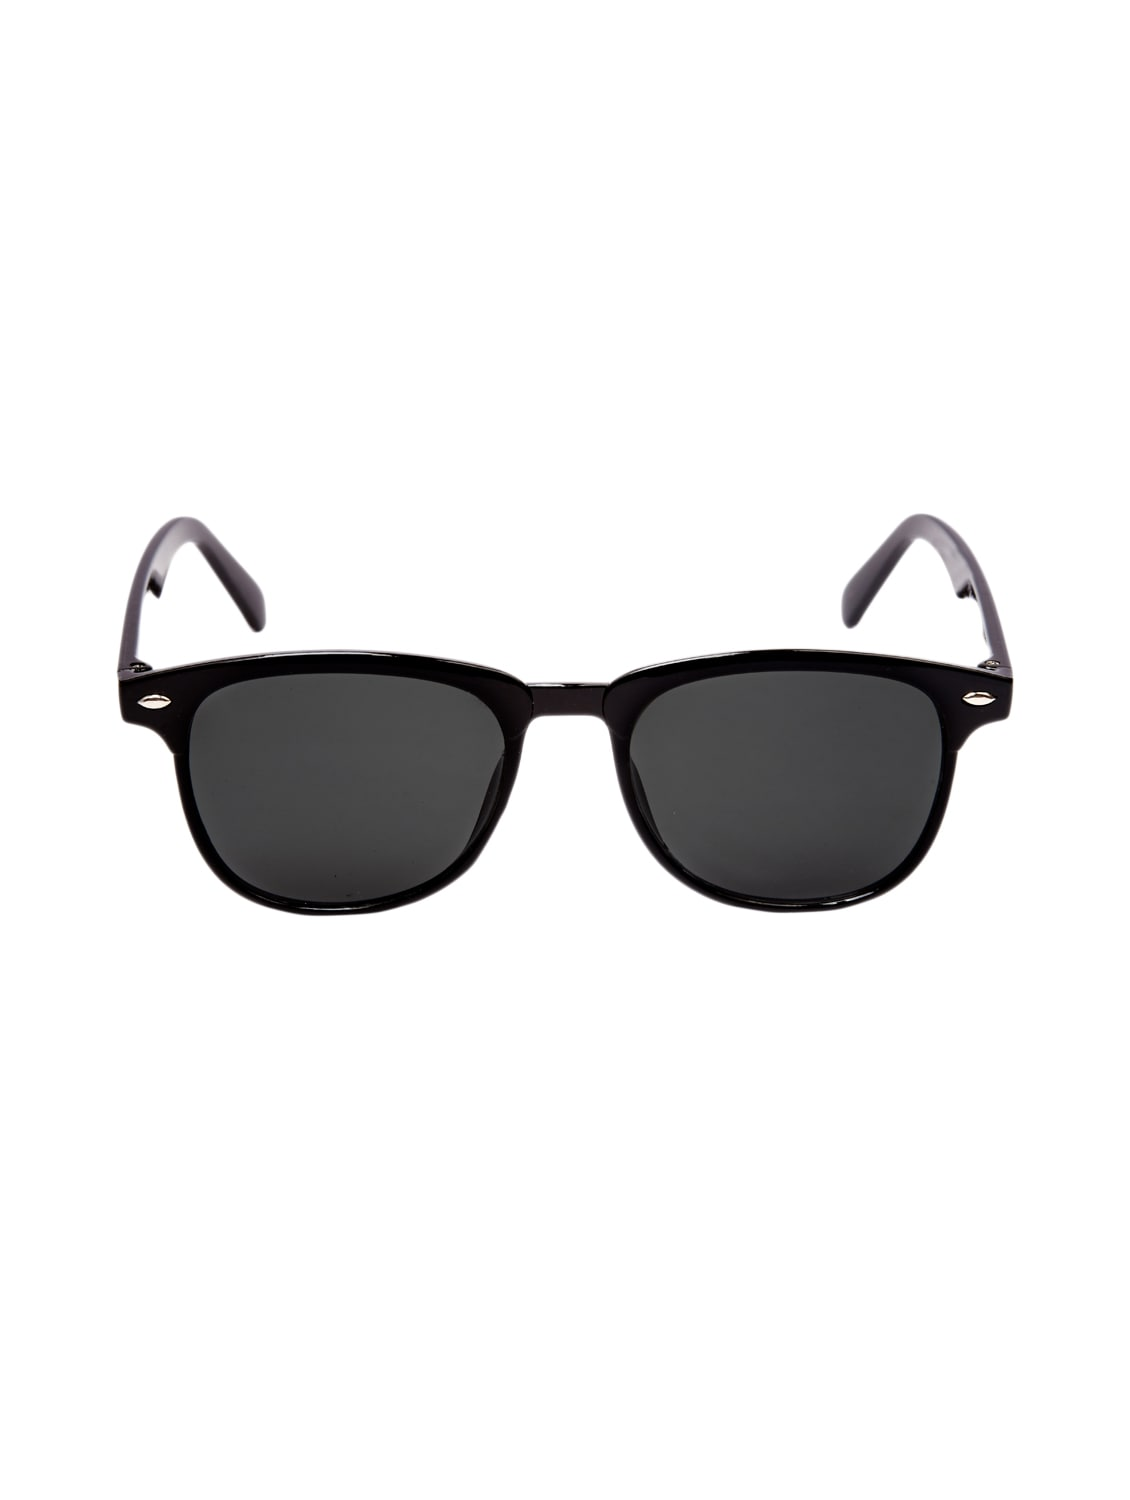 0c69fa8fd Buy Uv Protected Wayfarer Sunglasses for Men from Thewhoop for ₹307 at 72%  off   2019 Limeroad.com